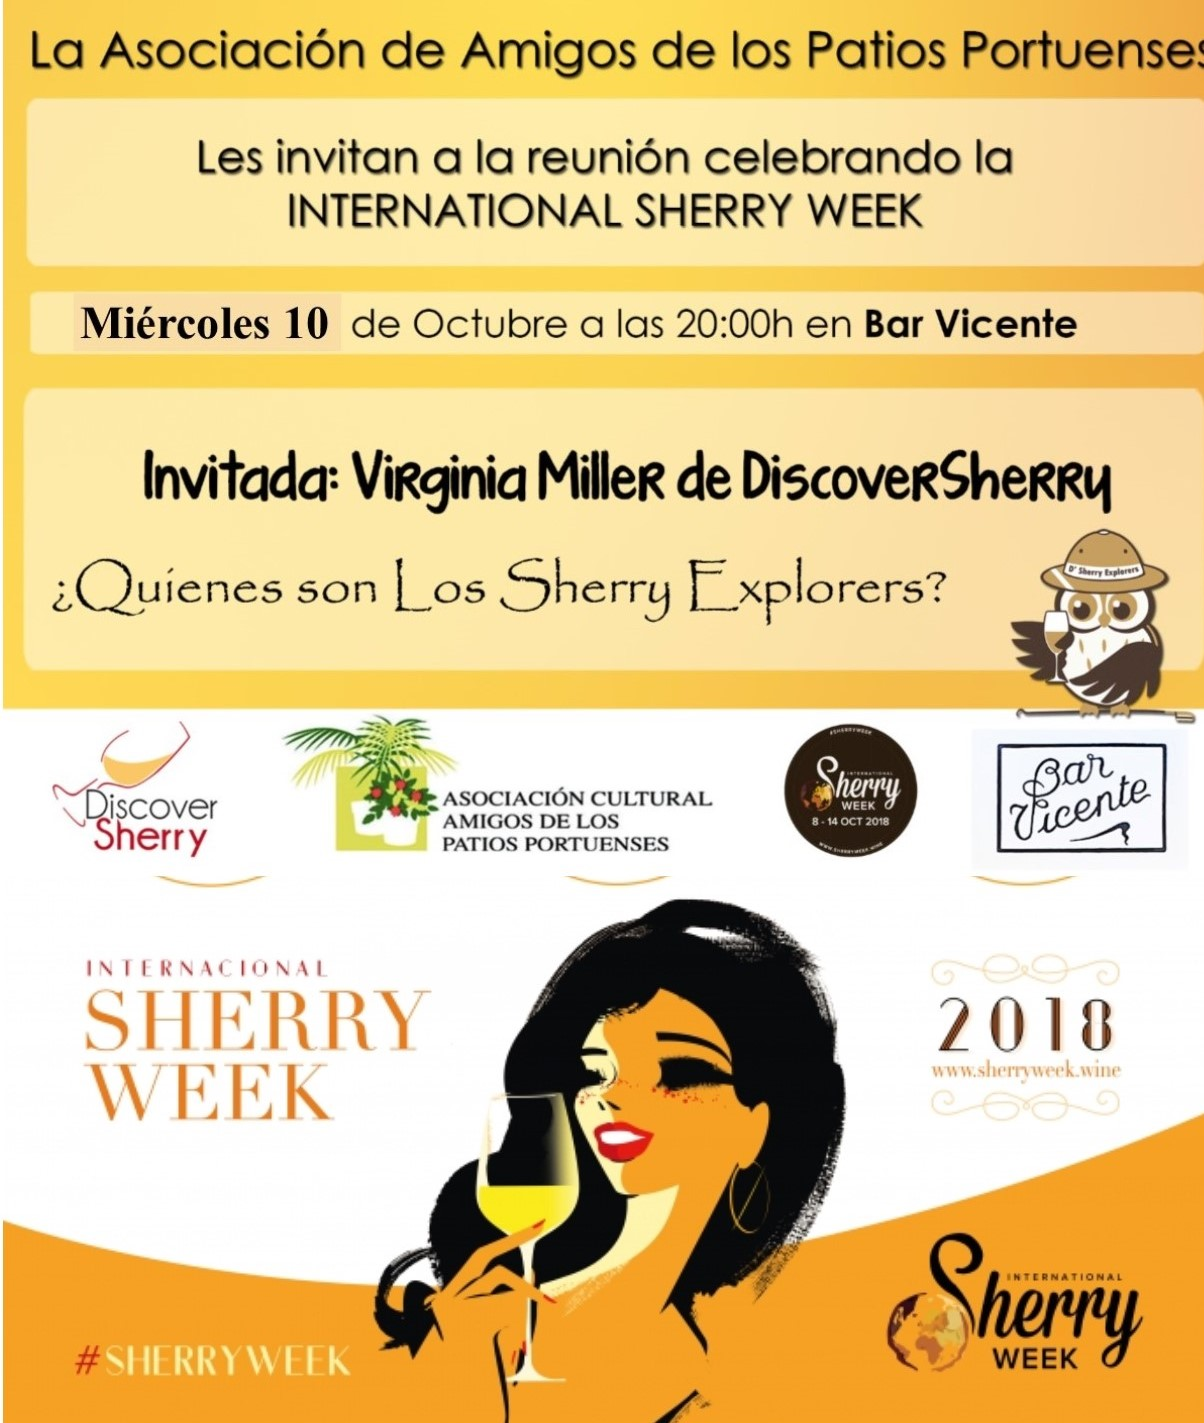 International Sherry Week 2018: conoce a los Sherry Explorers!!